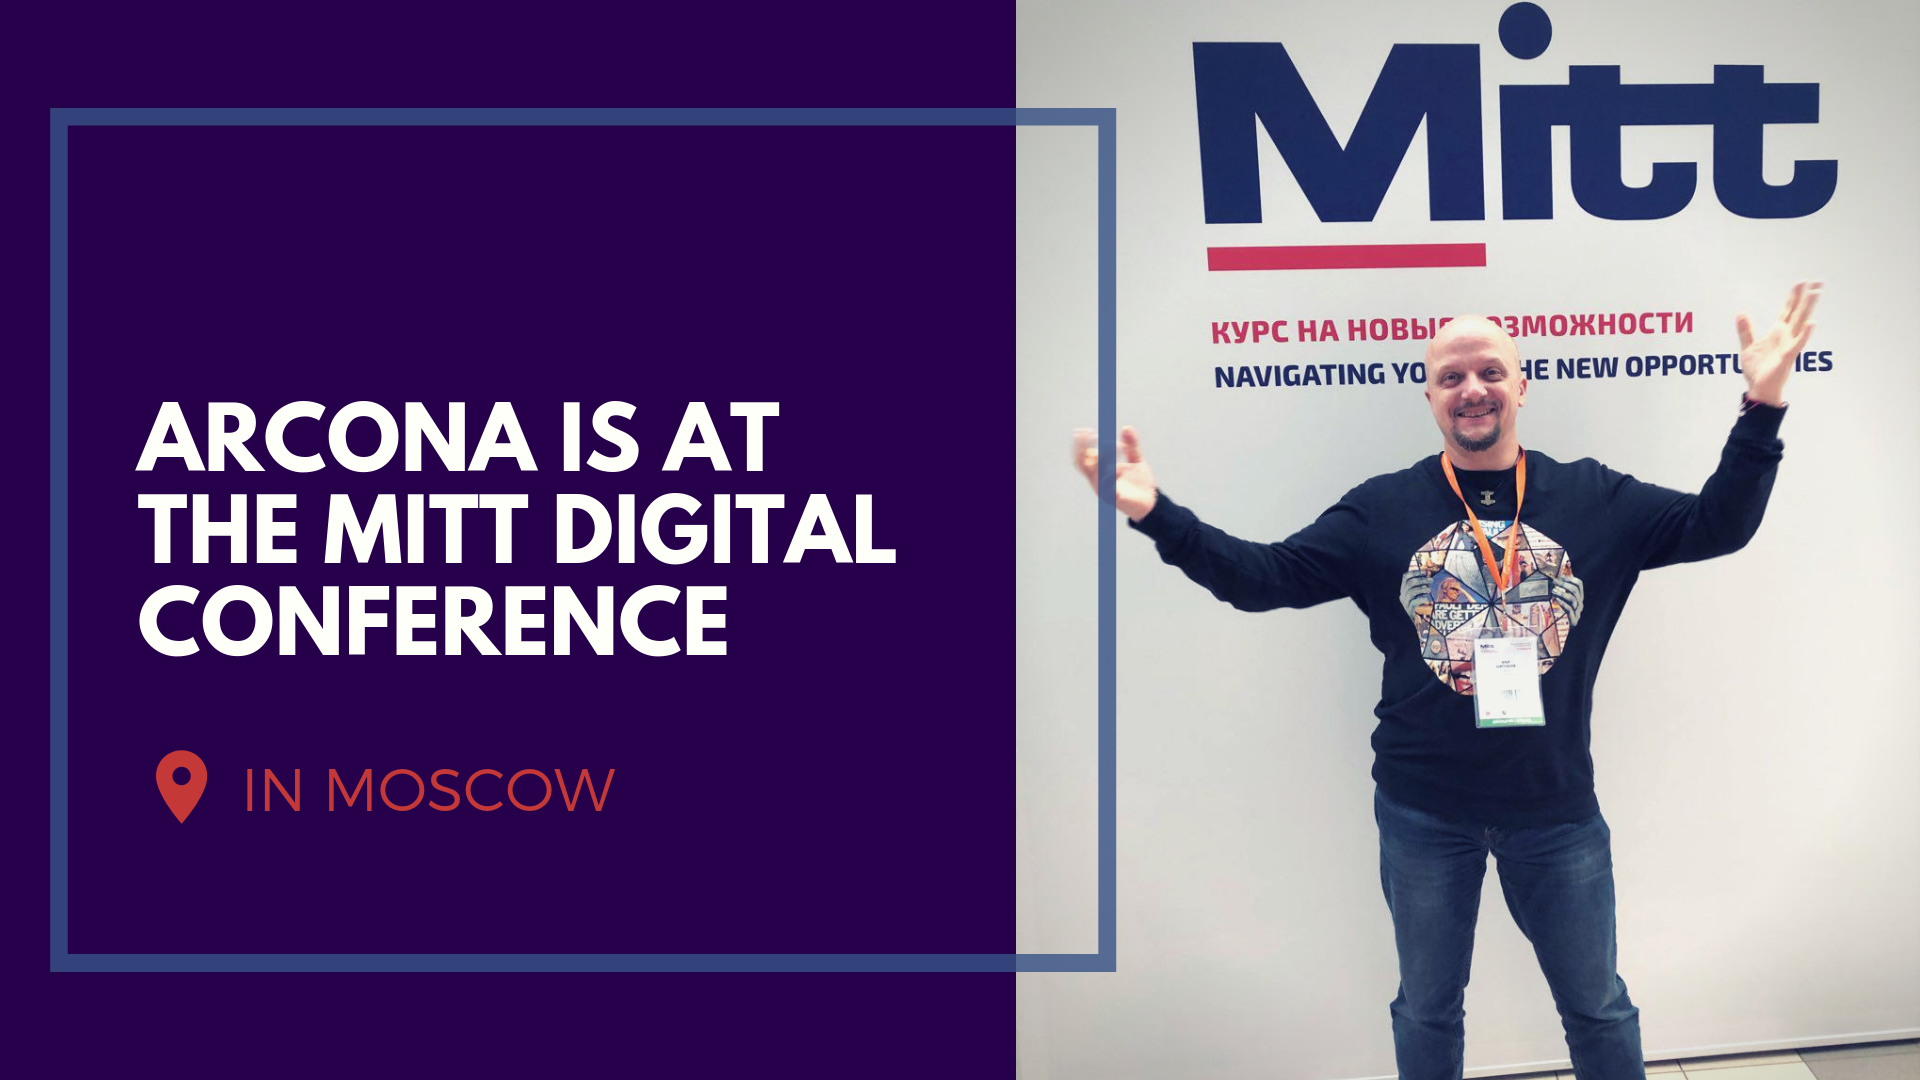 Arcona is at the MITT Digital Conference in Moscow